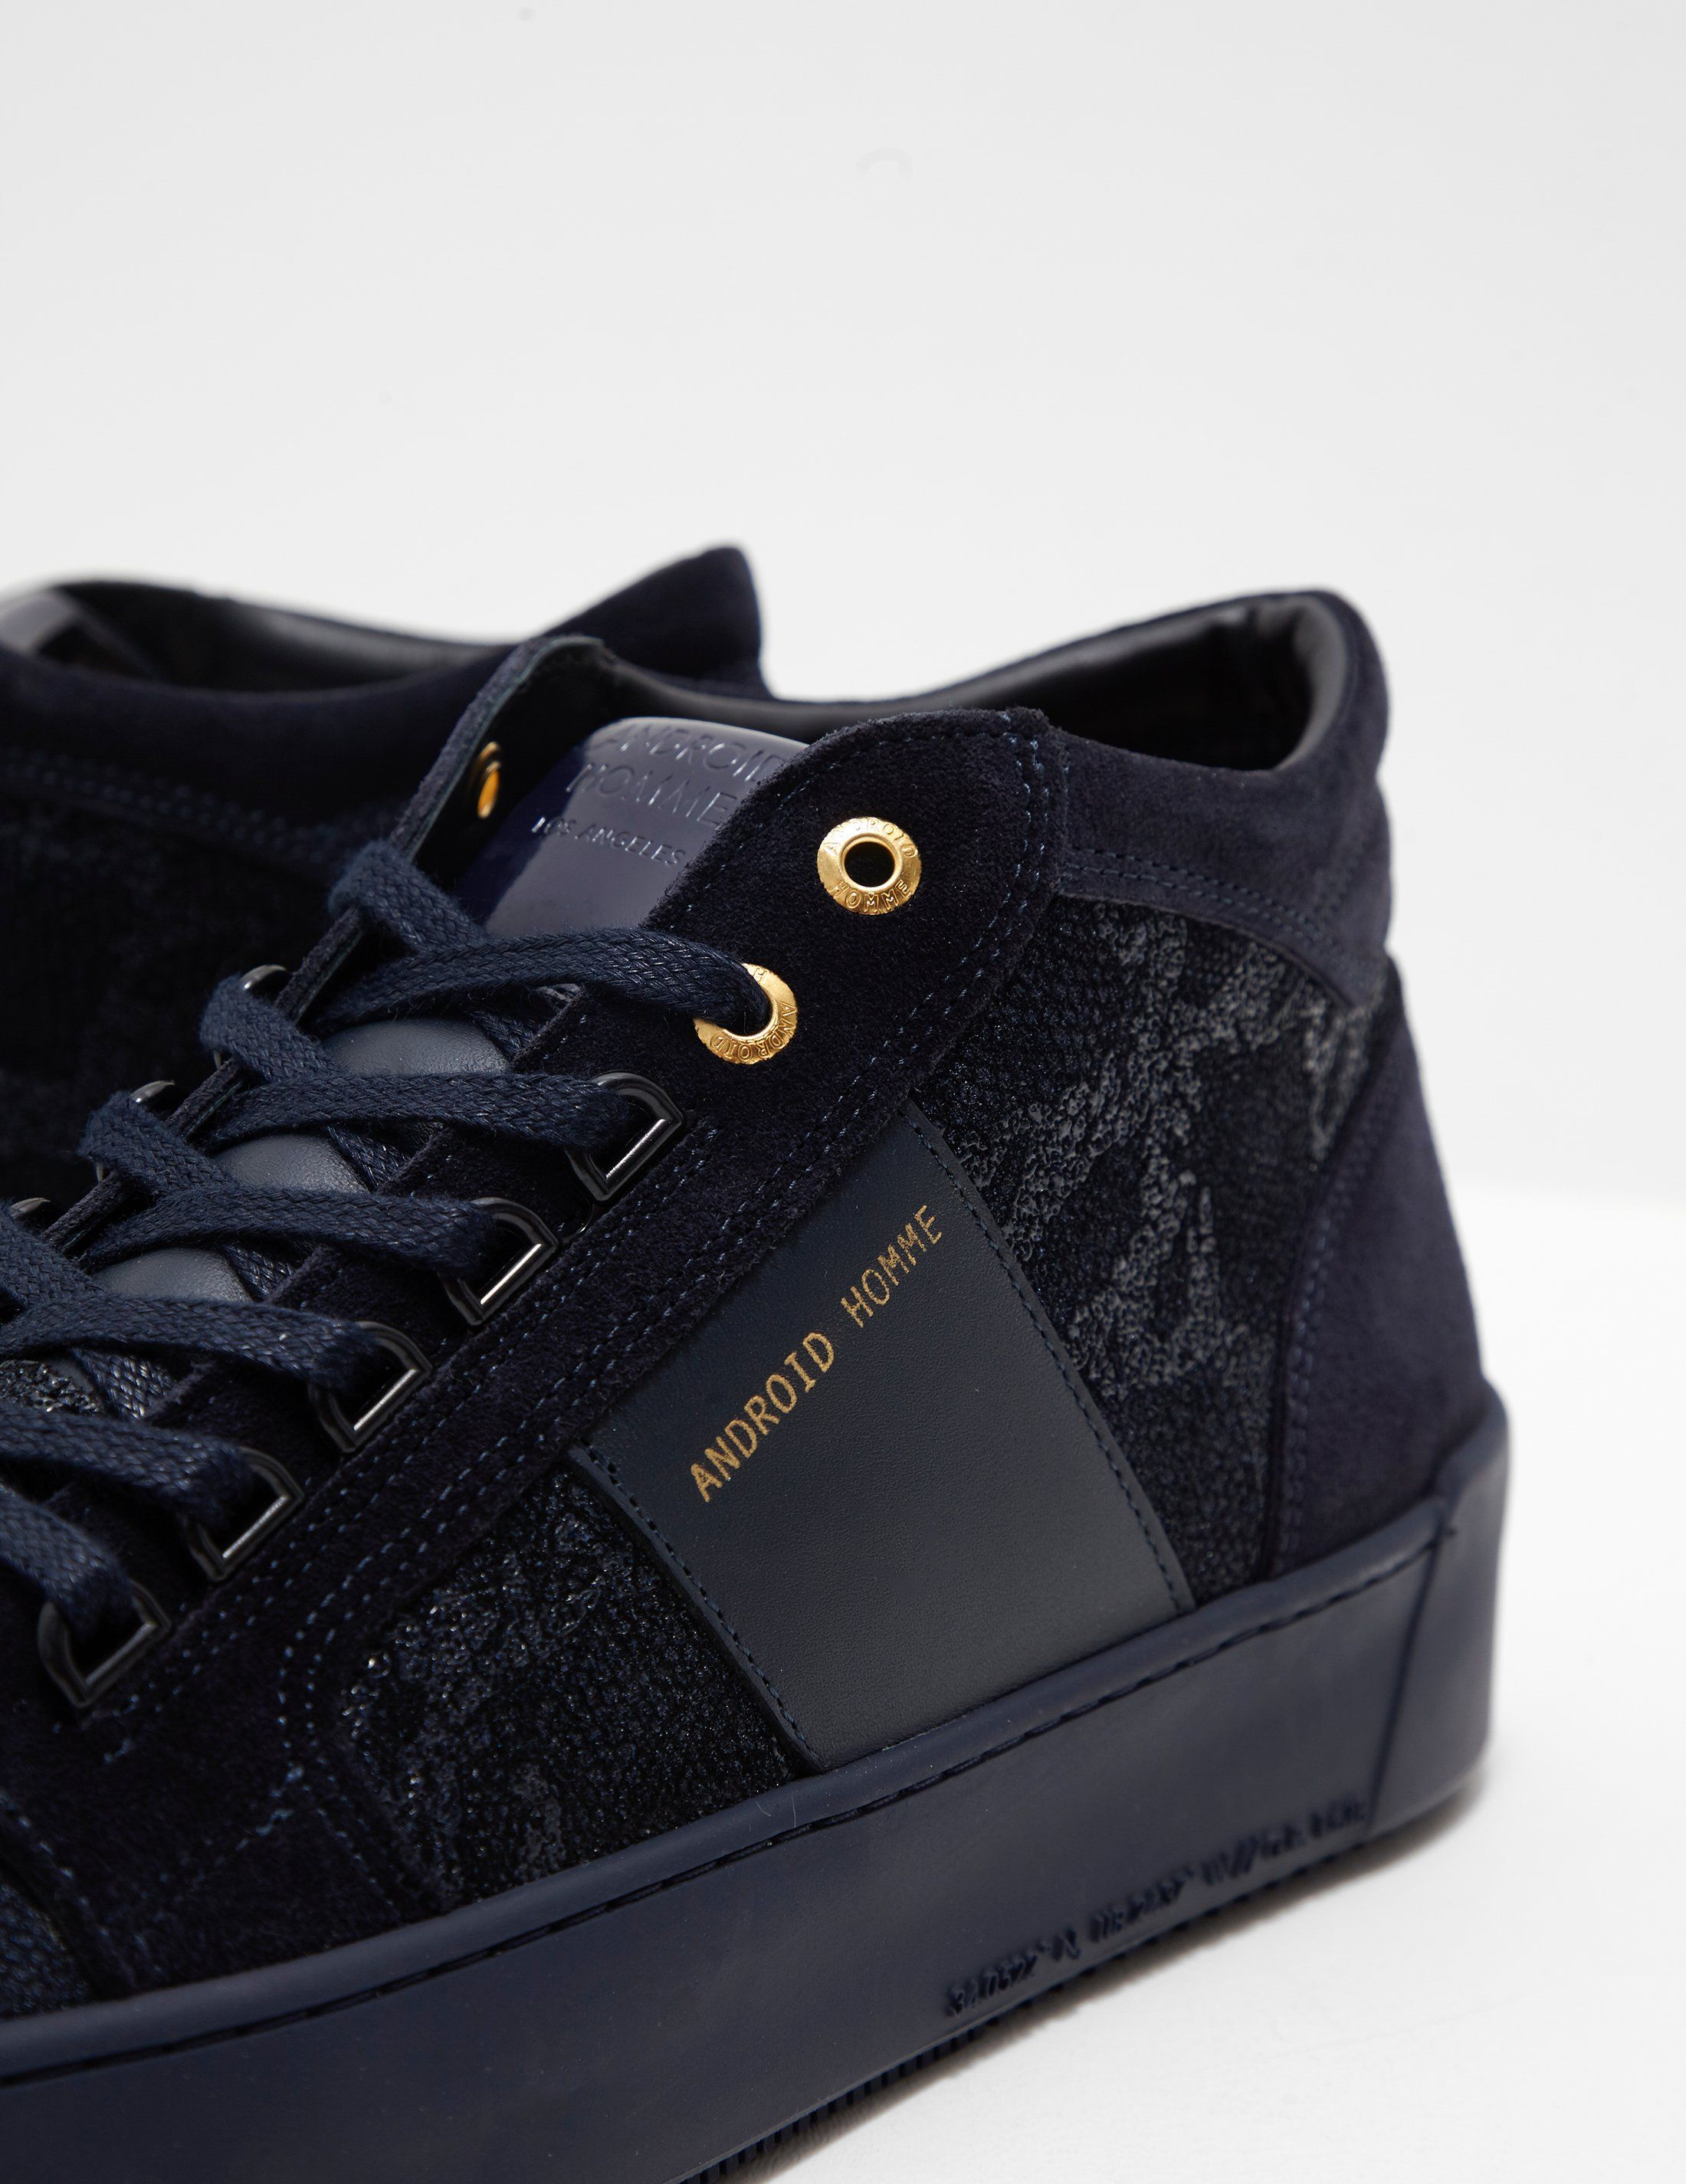 Android Homme Propulsion Python